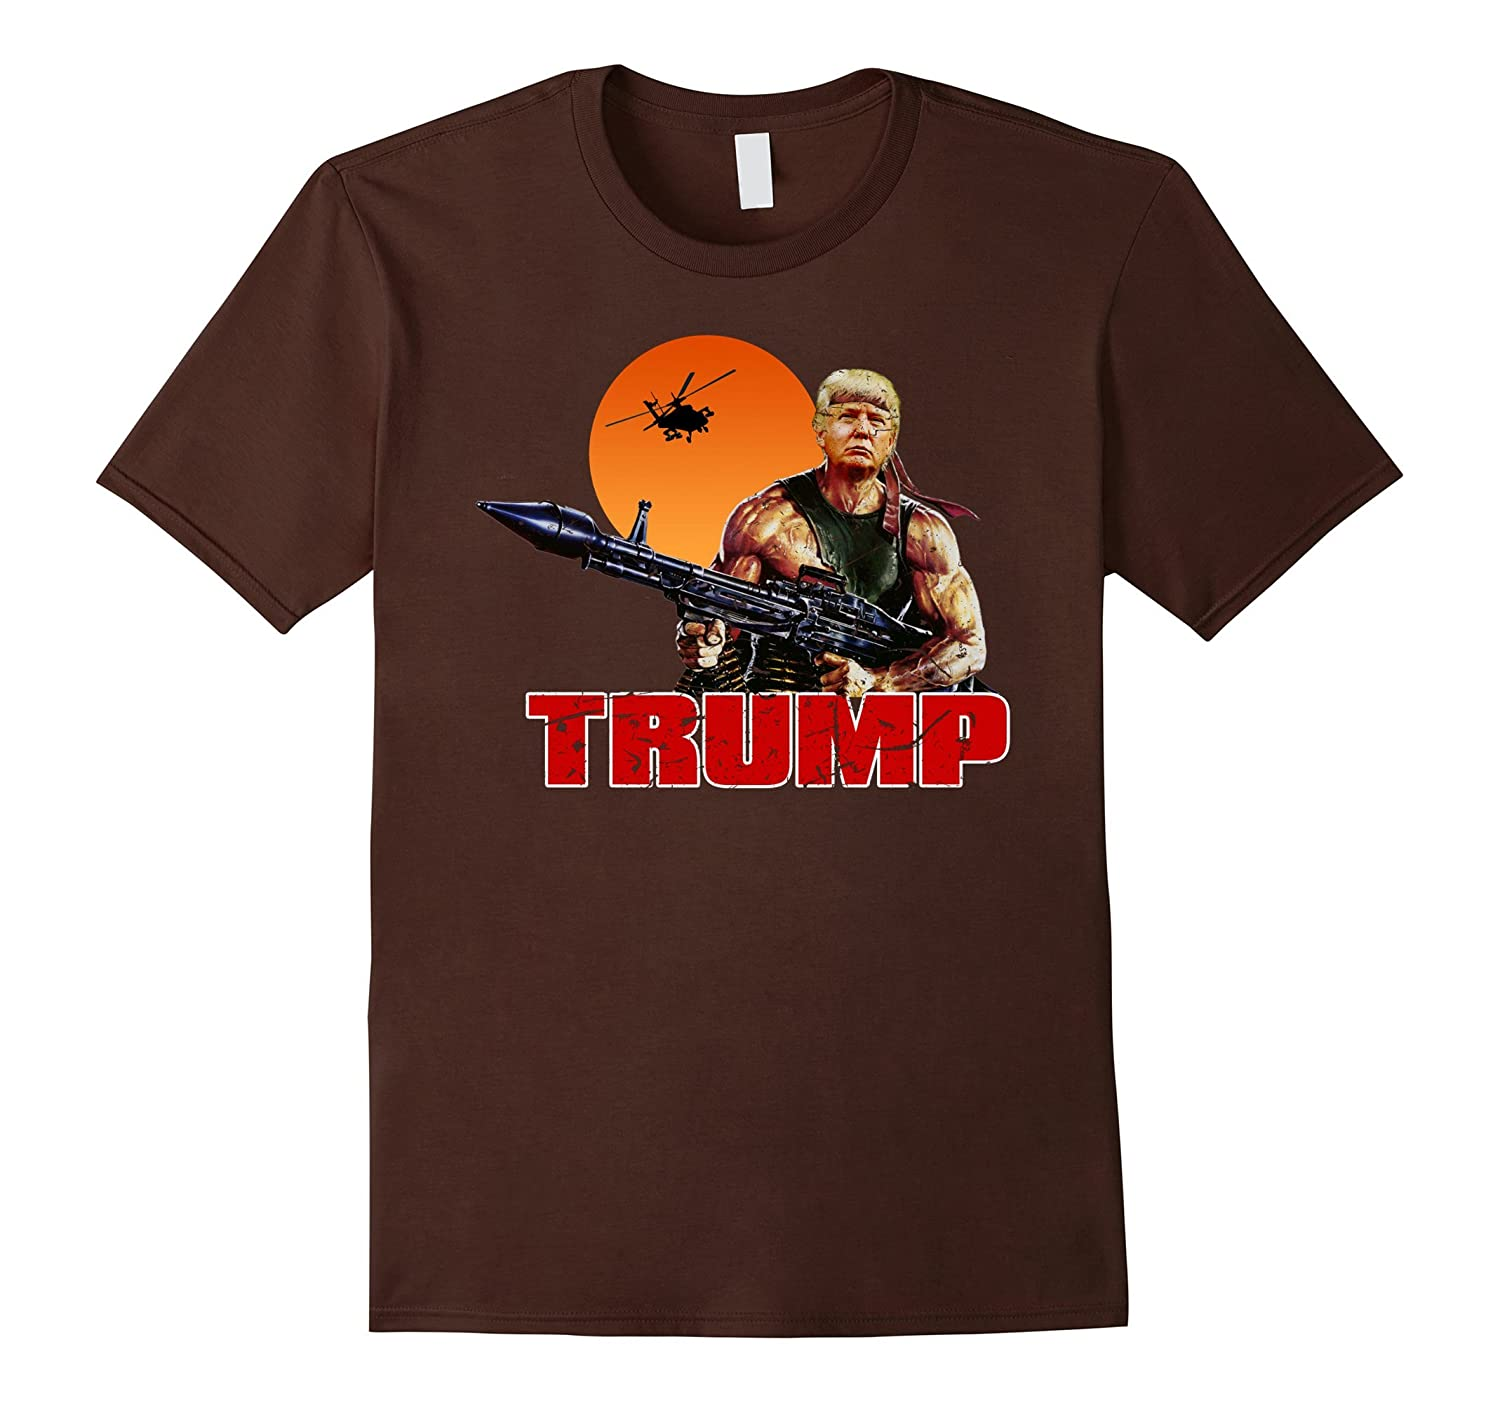 Donald Trump Shirt for President Funny Campaign Tee Shirts-TD